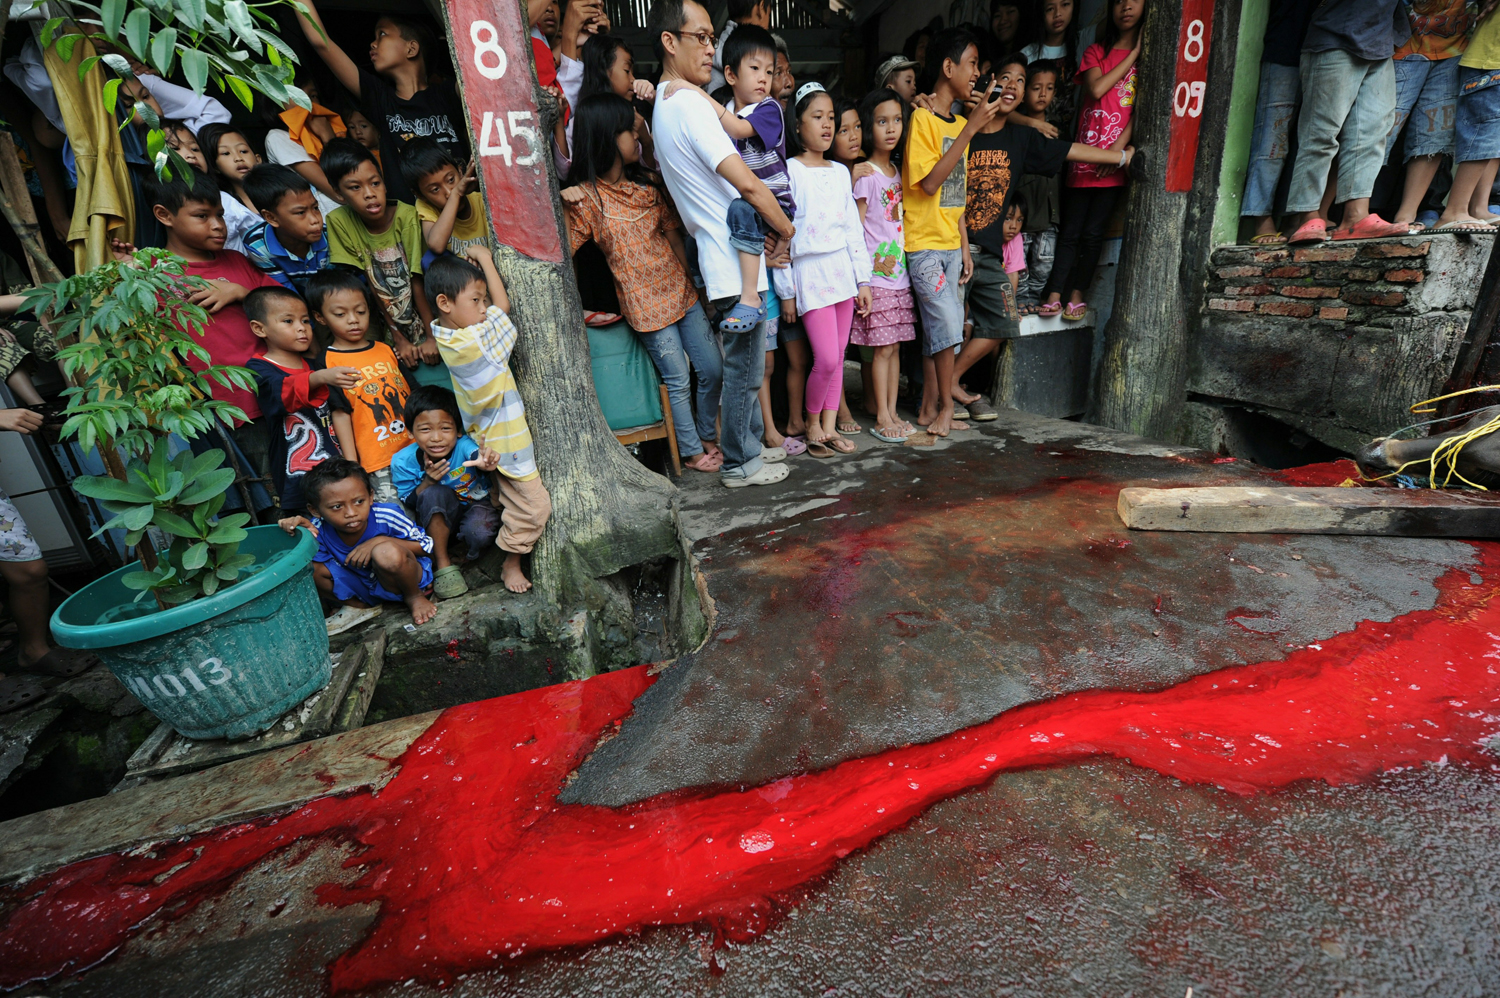 Blood flows down the street while children watch on as volunteers slaughter a cow at Daarun Najaah mosque during the Eid al-Adha festival in Jakarta on November 17, 2010. Indonesian Muslims along with thousands others around the world are marking Eid al-Adha or 'Feast of the Sacrifice', which marks the end of the annual hajj or pilgrimage to Mecca and celebrated in remembrance of Abraham's readiness to sacrifice his son to God. AFP PHOTO / ROMEO GACAD (Photo credit should read ROMEO GACAD/AFP/Getty Images)